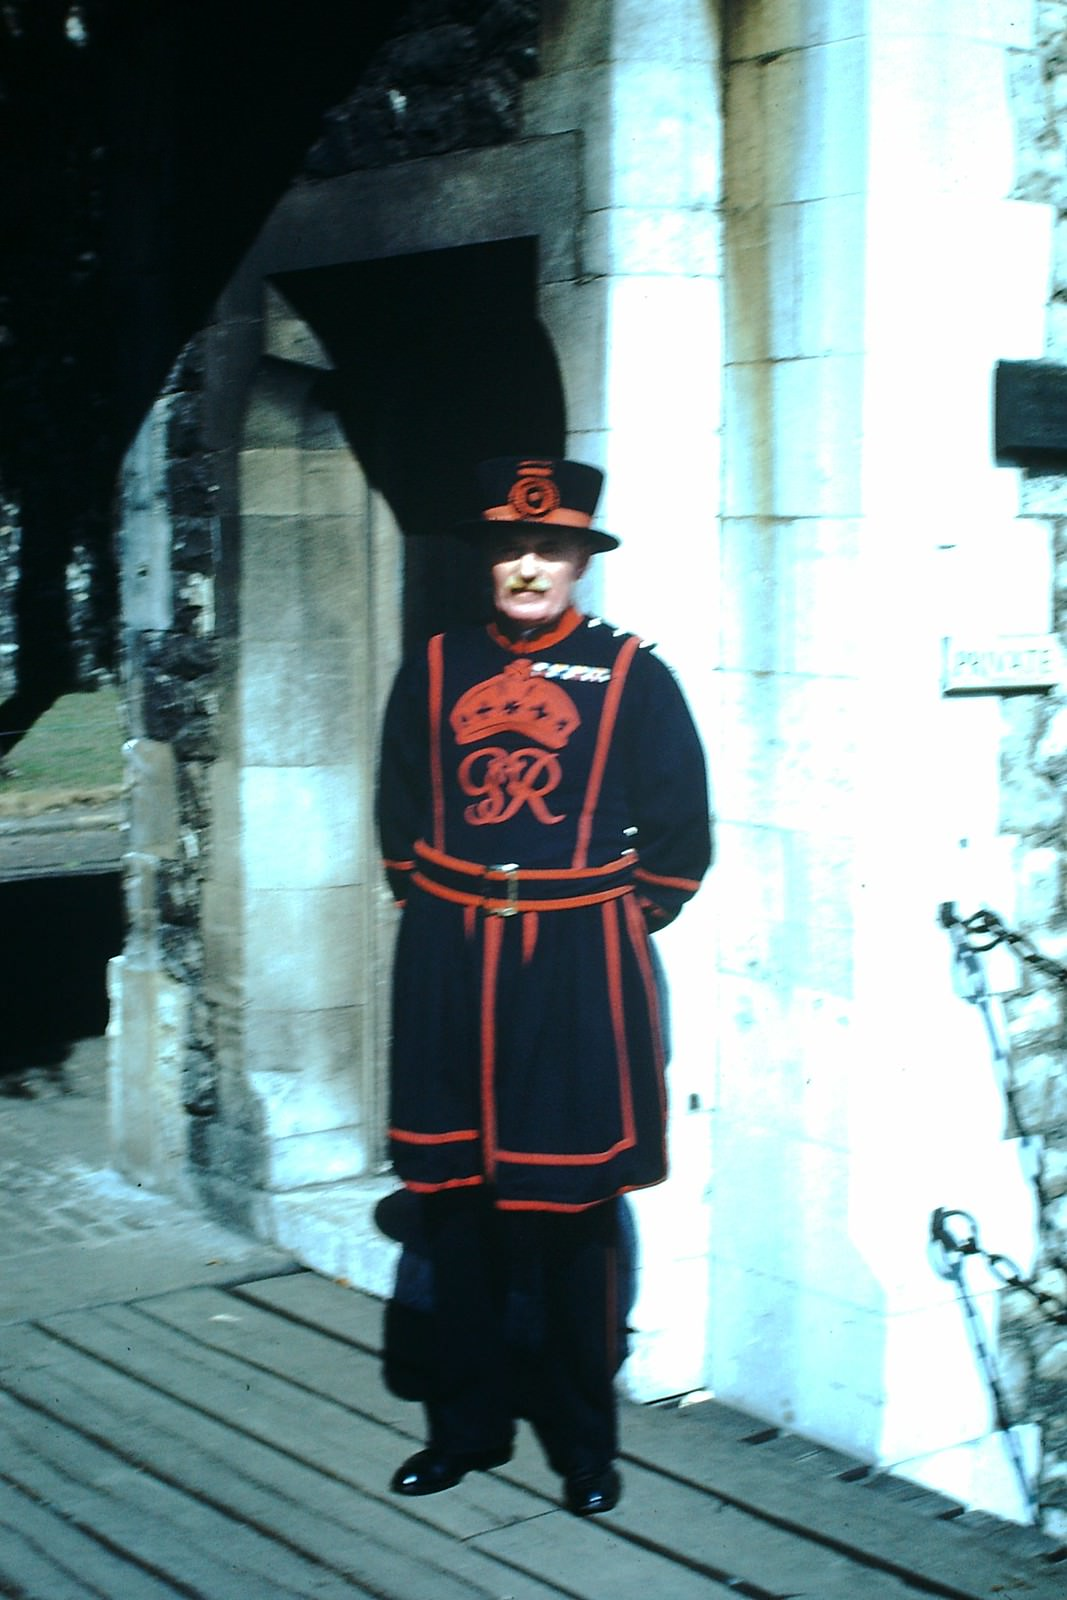 Beefeater, Tower- London, 1949.